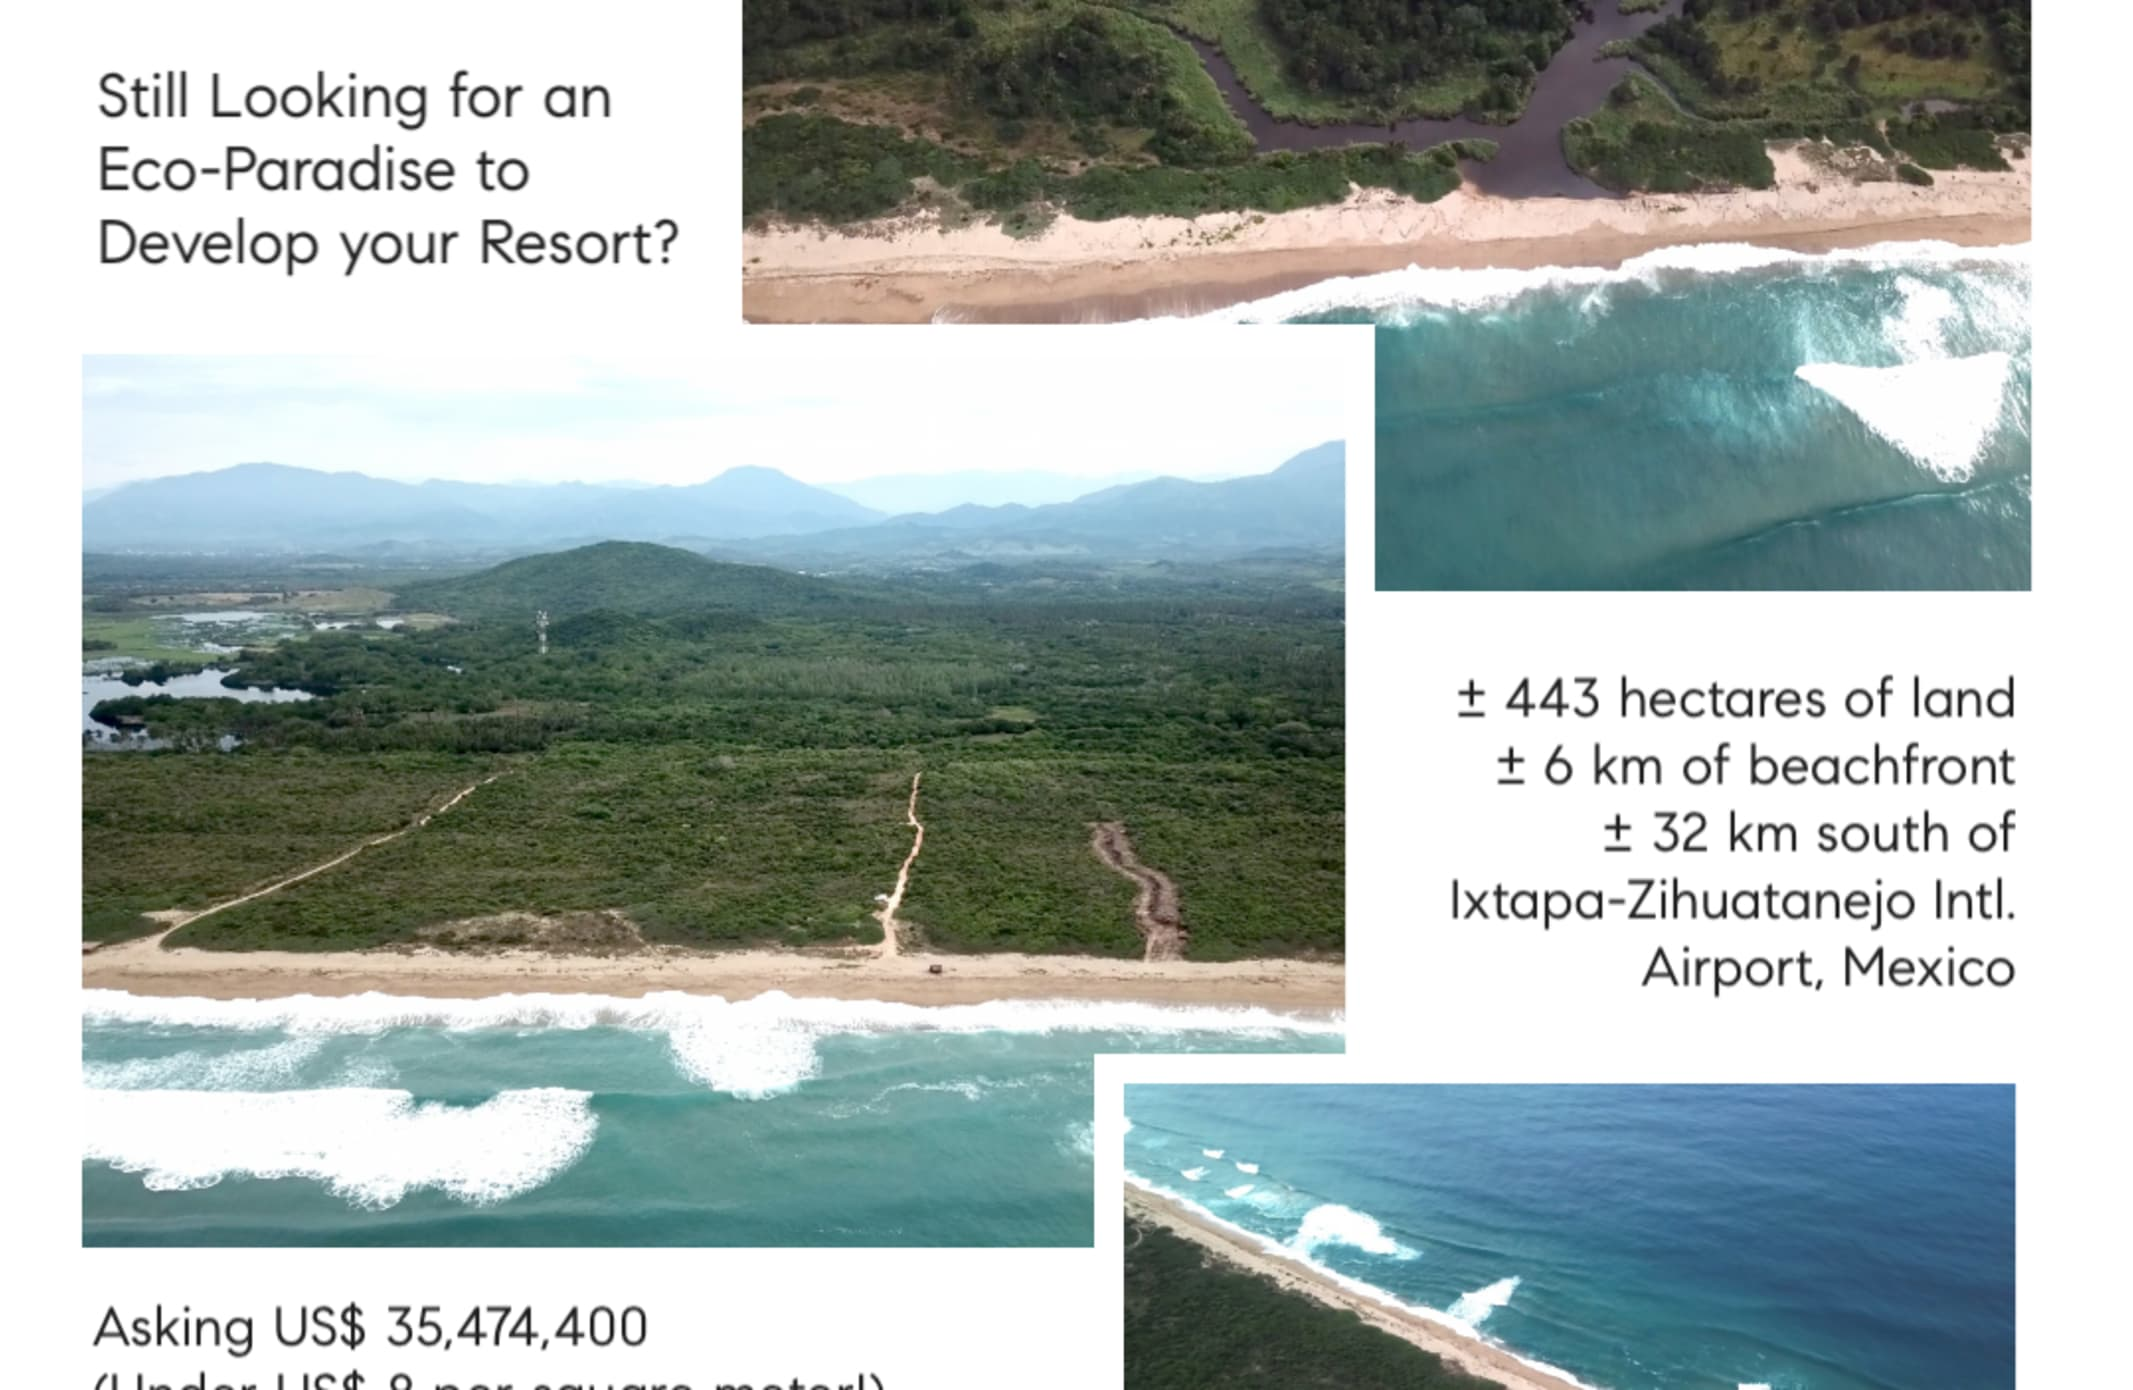 Still Looking For An Eco Paradise To Develop Your Resort?